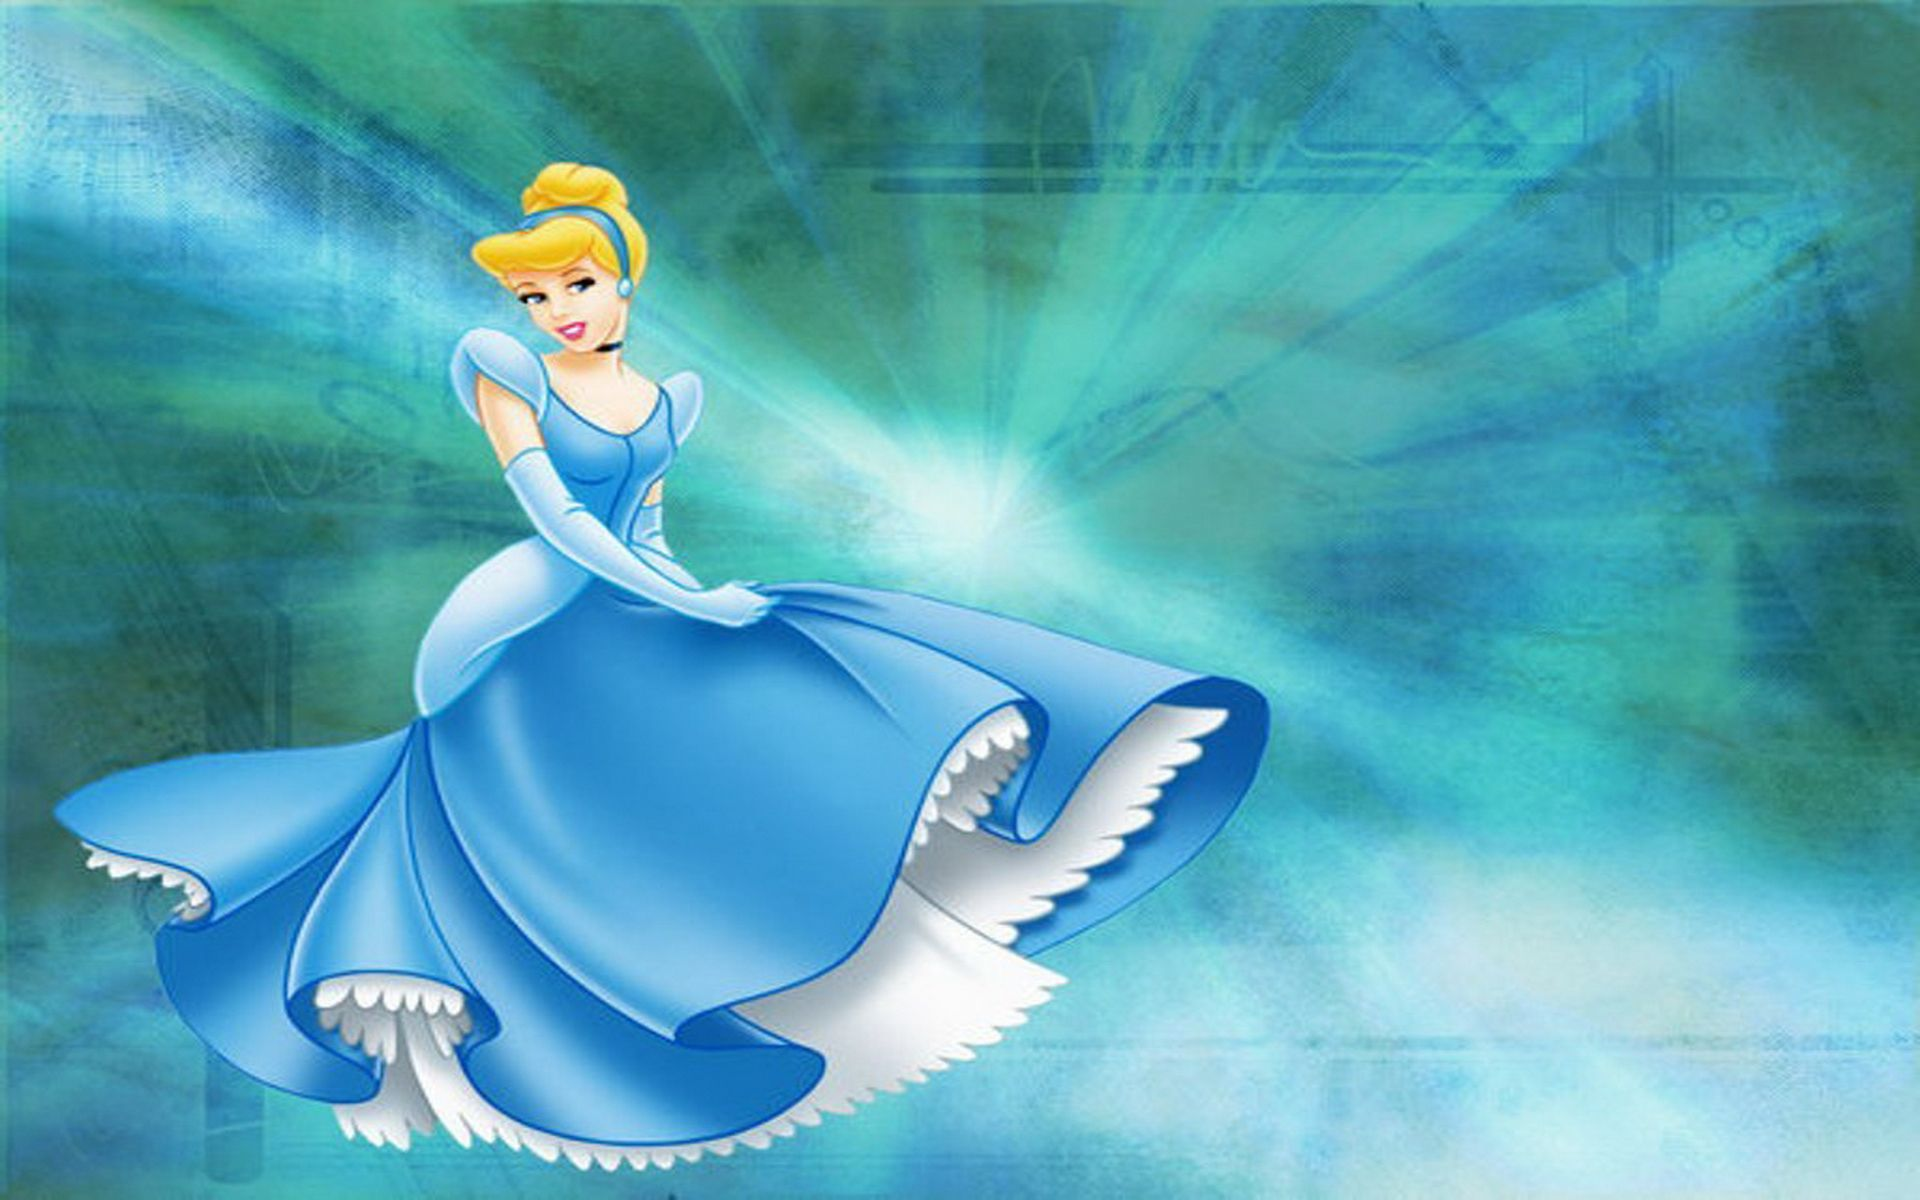 Cinderella wallpaper for phone cartoons wallpapers 1024768 pics of cinderella wallpaper for phone cartoons wallpapers 1024768 pics of cinderella wallpapers 50 wallpapers adorable wallpapers thecheapjerseys Choice Image